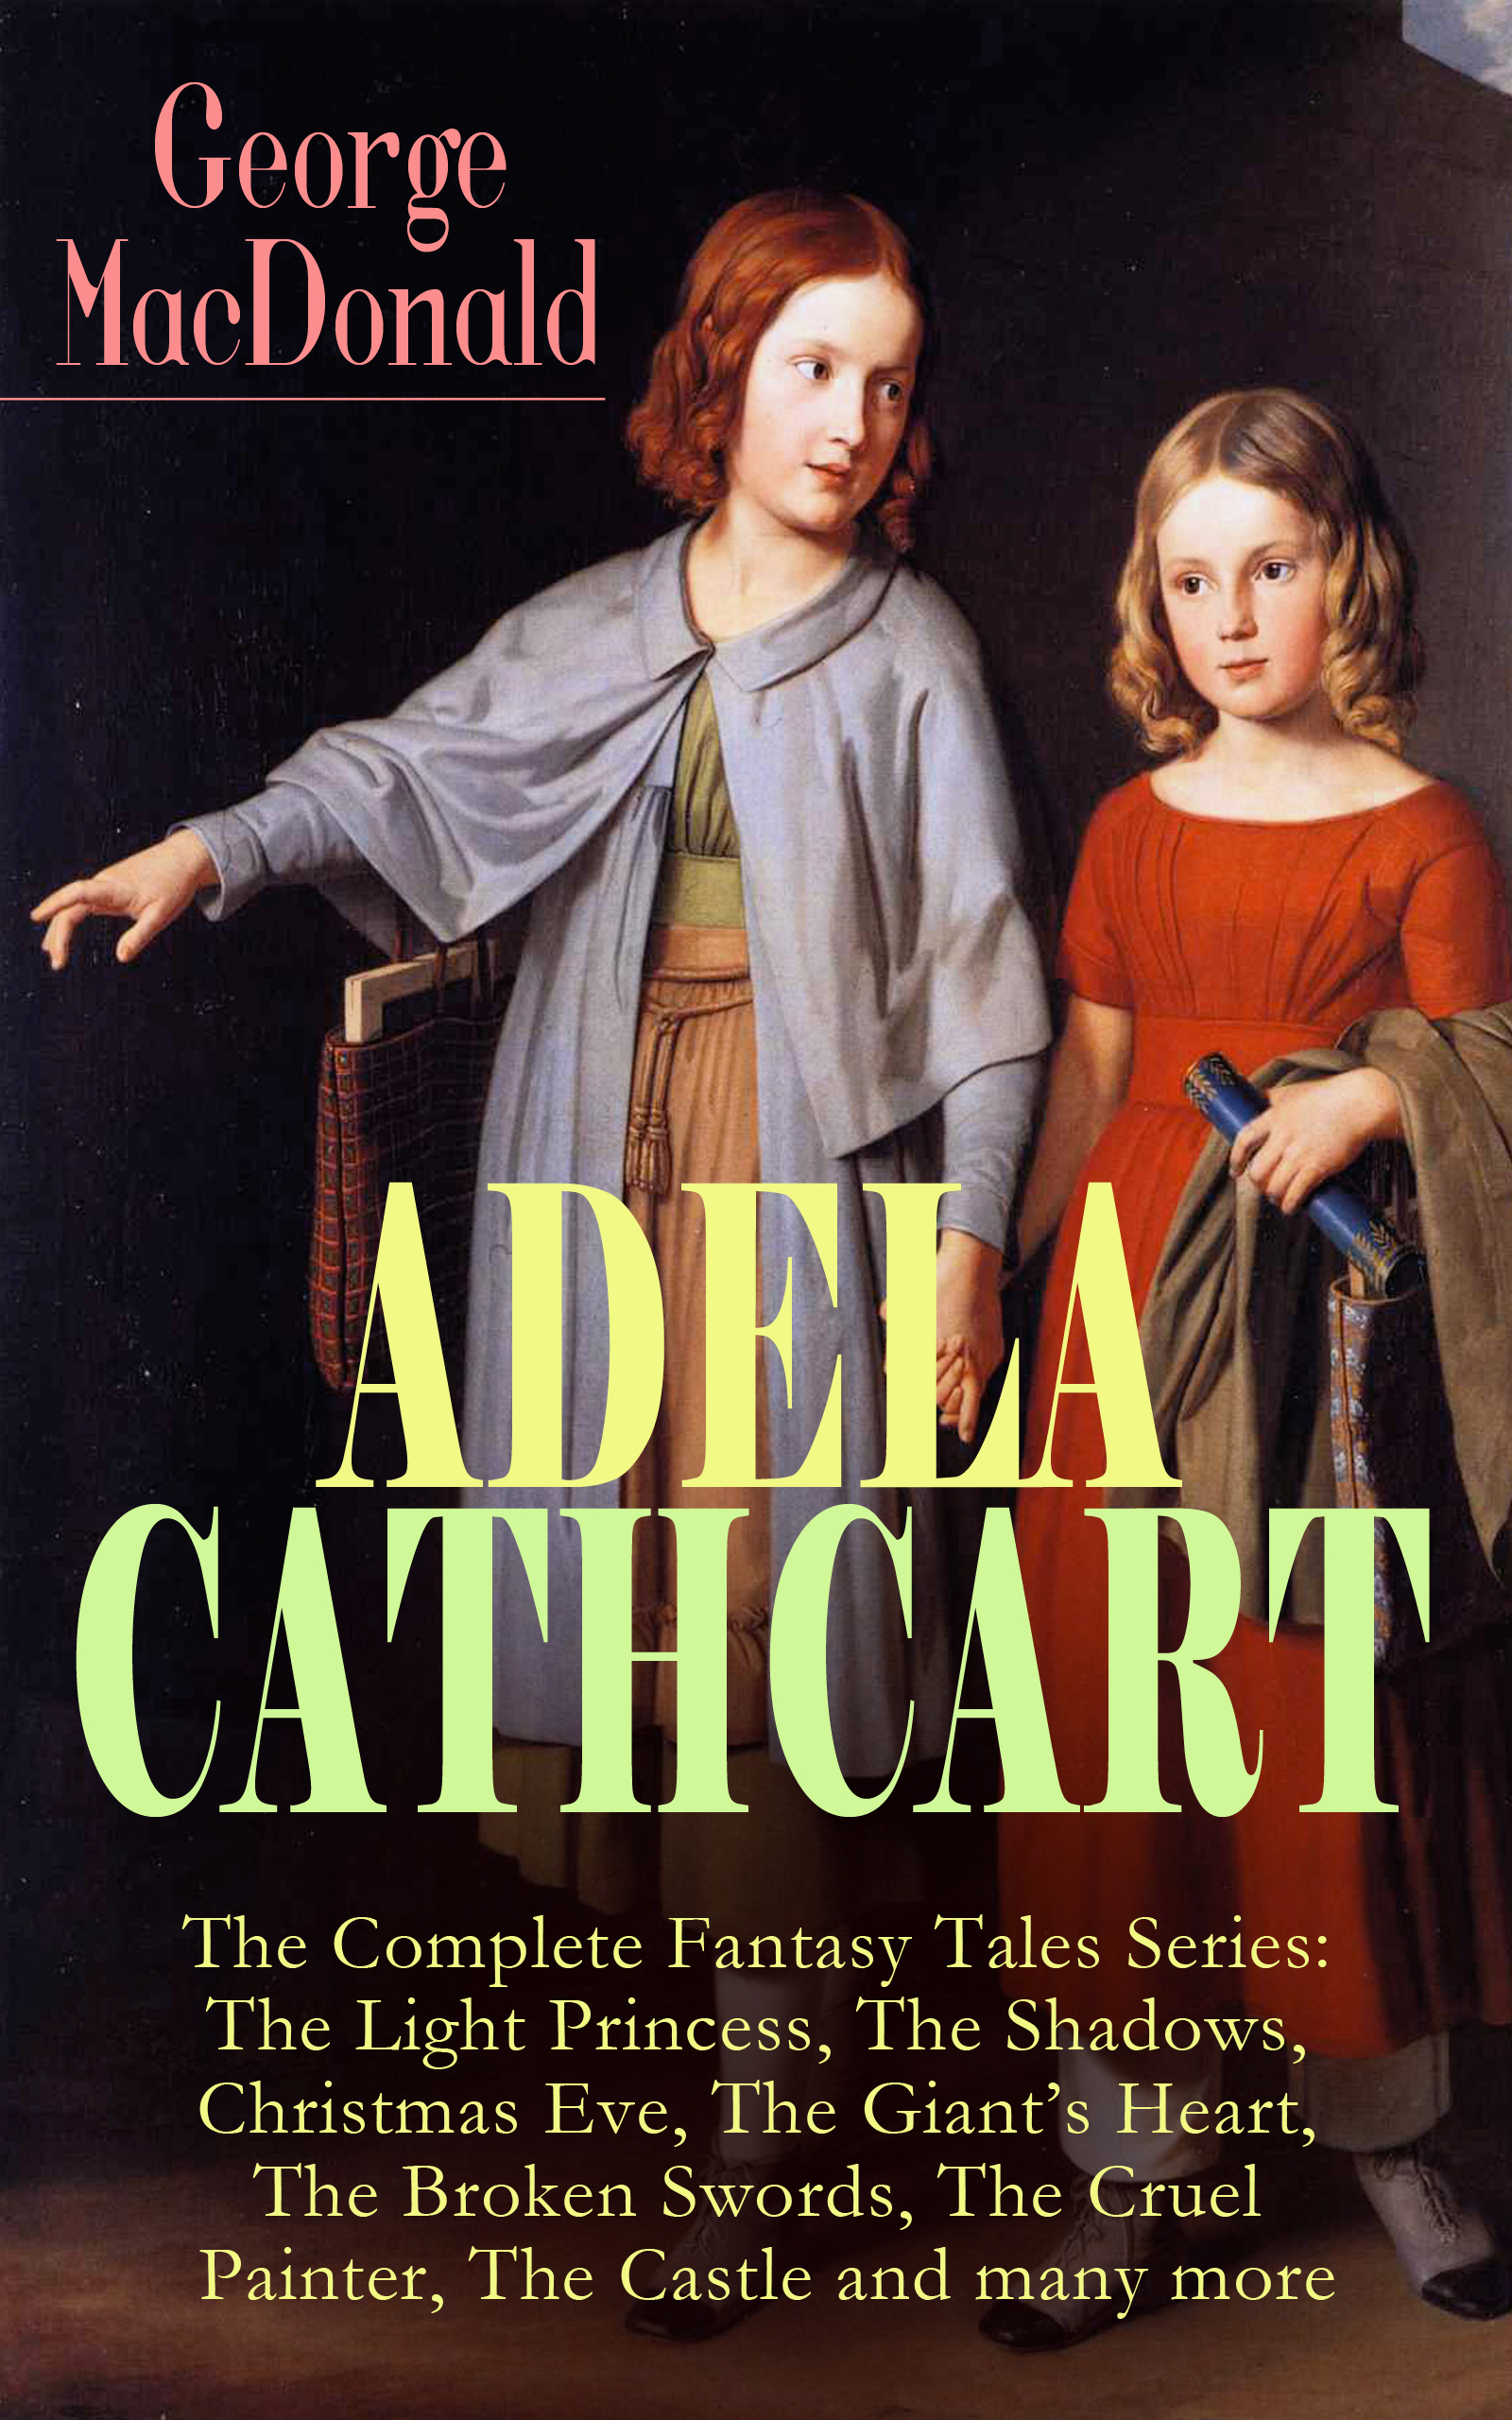 лучшая цена George MacDonald ADELA CATHCART - The Complete Fantasy Tales Series: The Light Princess, The Shadows, Christmas Eve, The Giant's Heart, The Broken Swords, The Cruel Painter, The Castle and many more